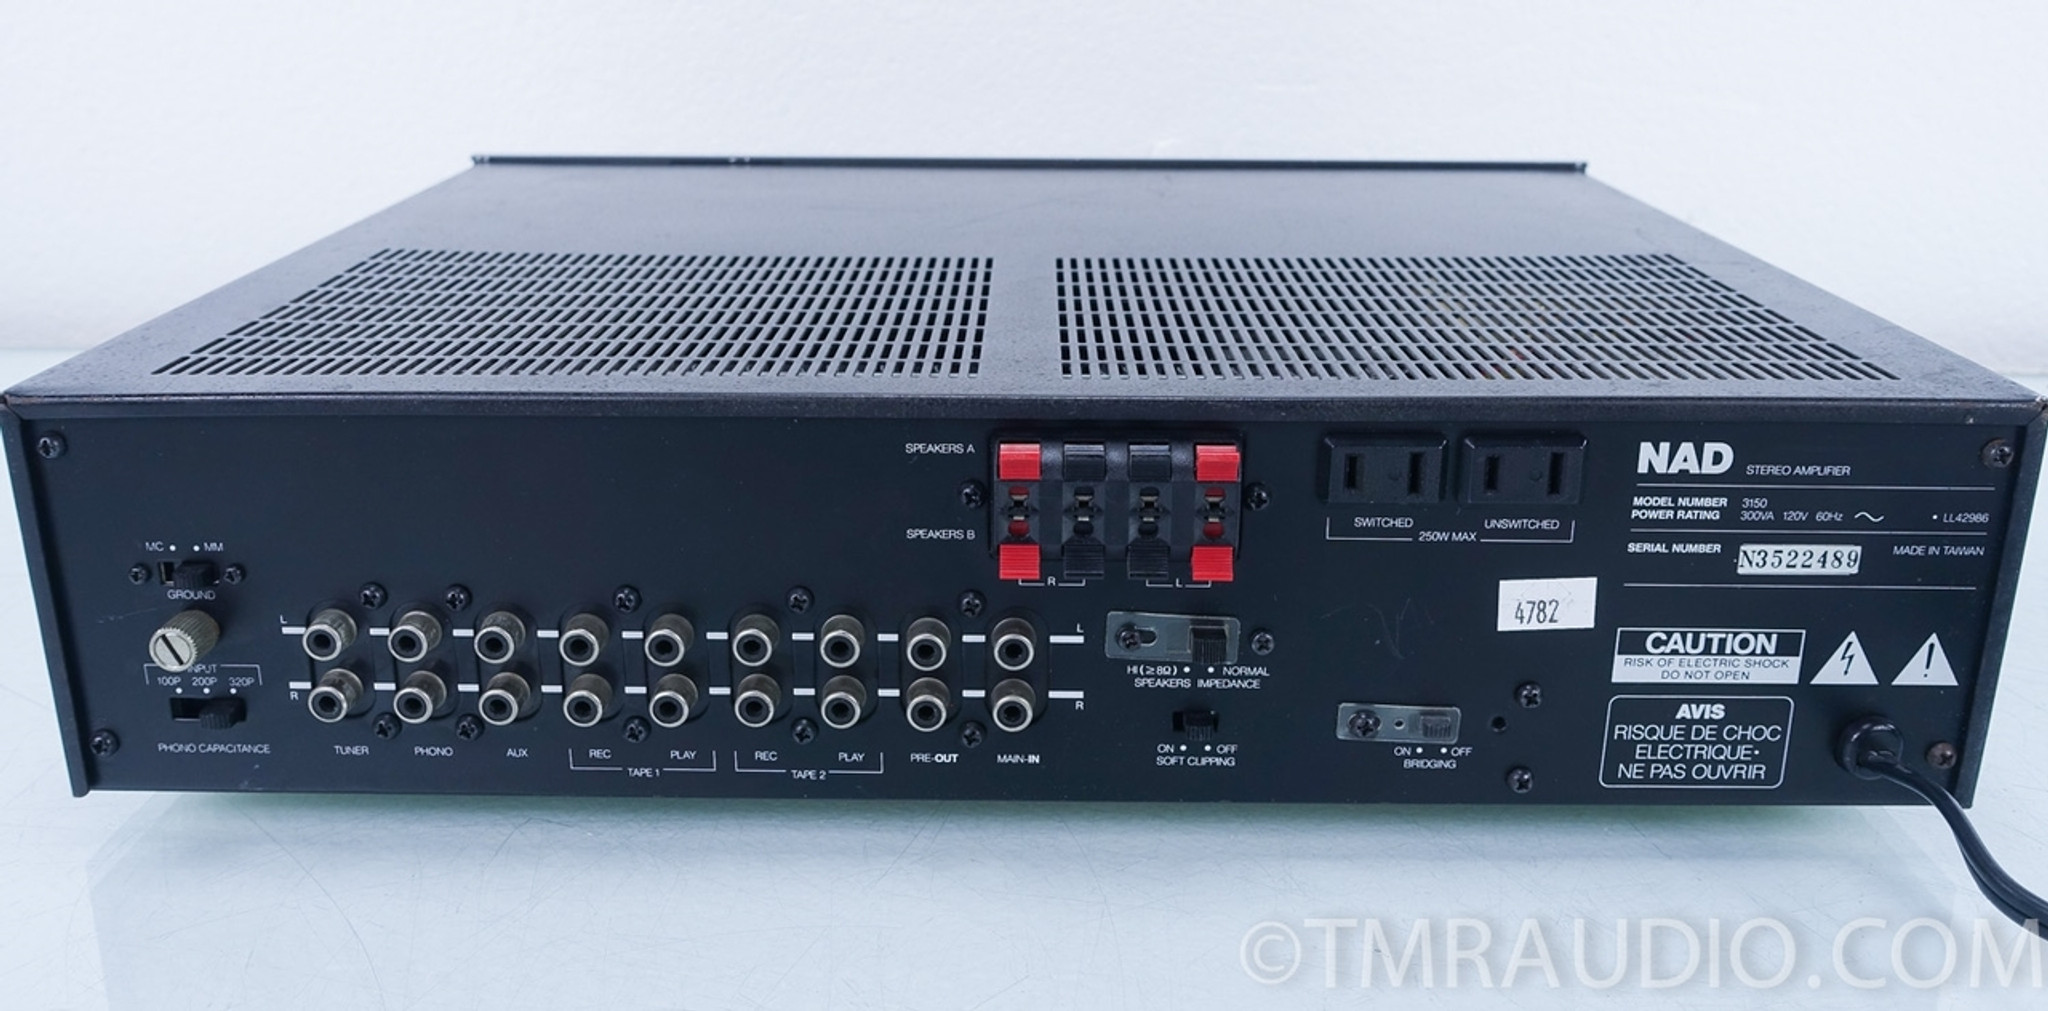 NAD 3150 Stereo Integrated Amplifier